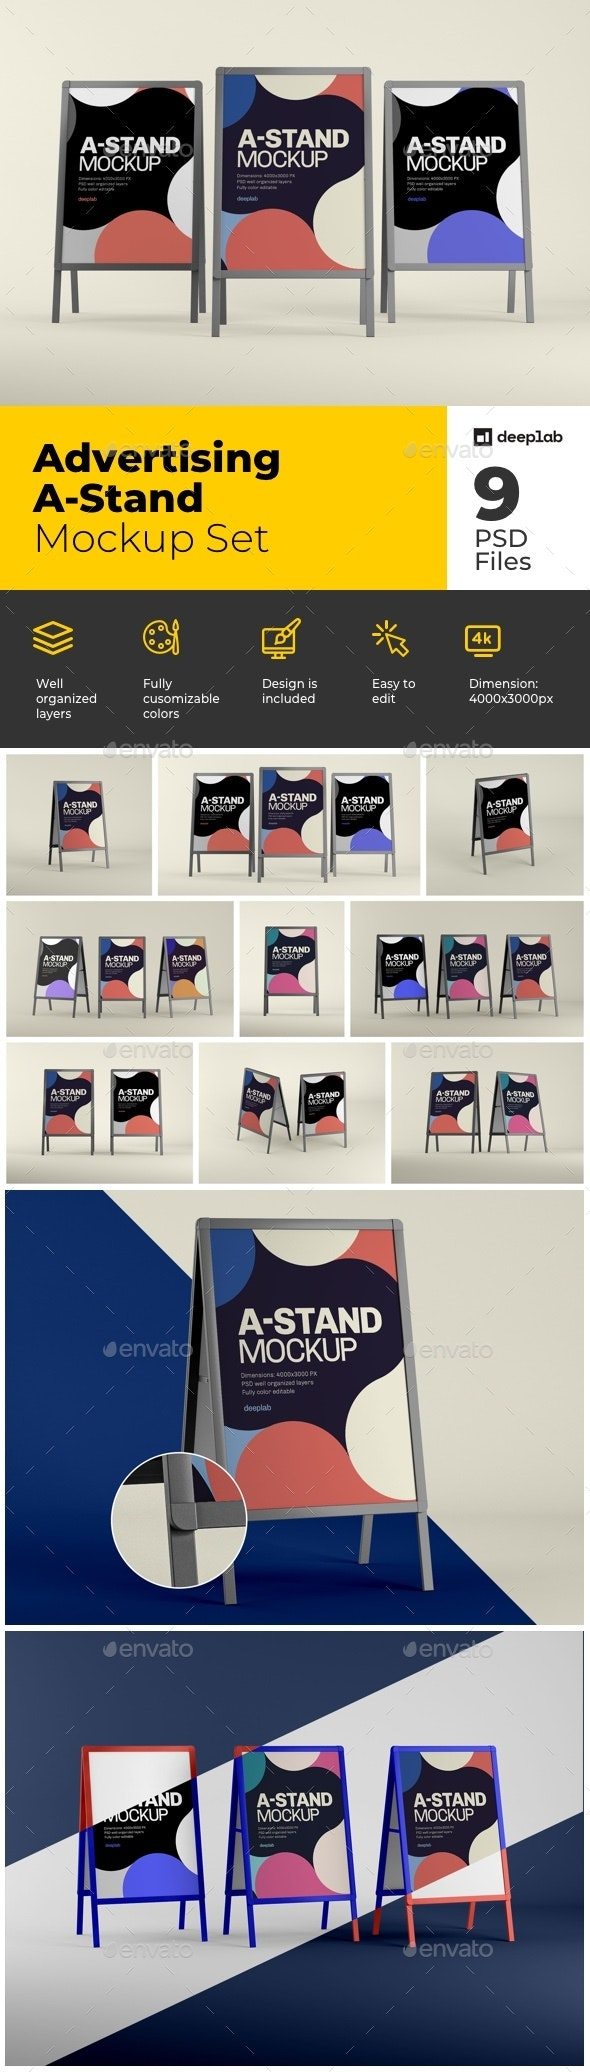 Advertising A-Stand Mockup Set - Product Mock-Ups Graphics